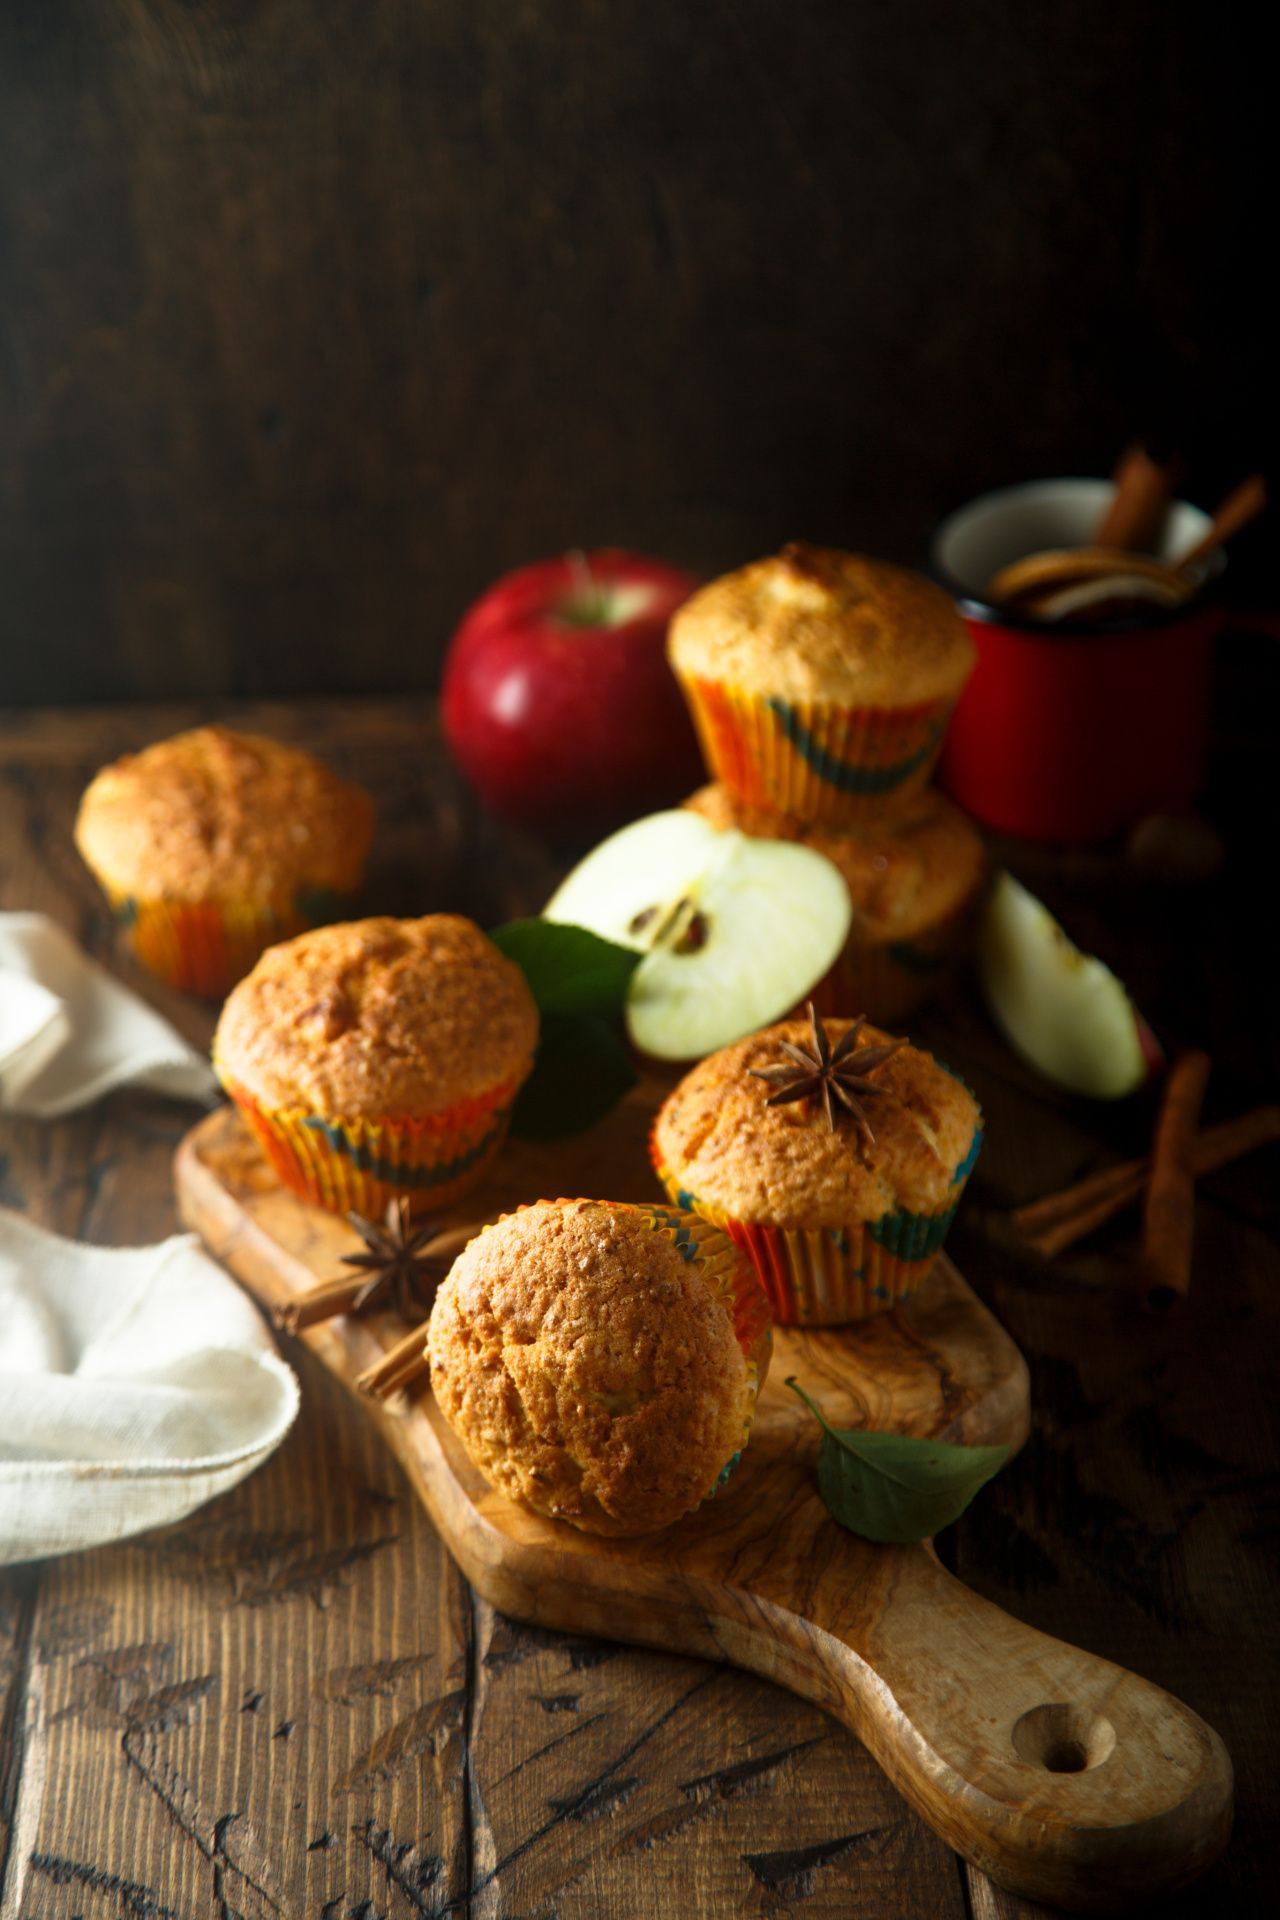 Apple & Cinnamon Muffin Recipe